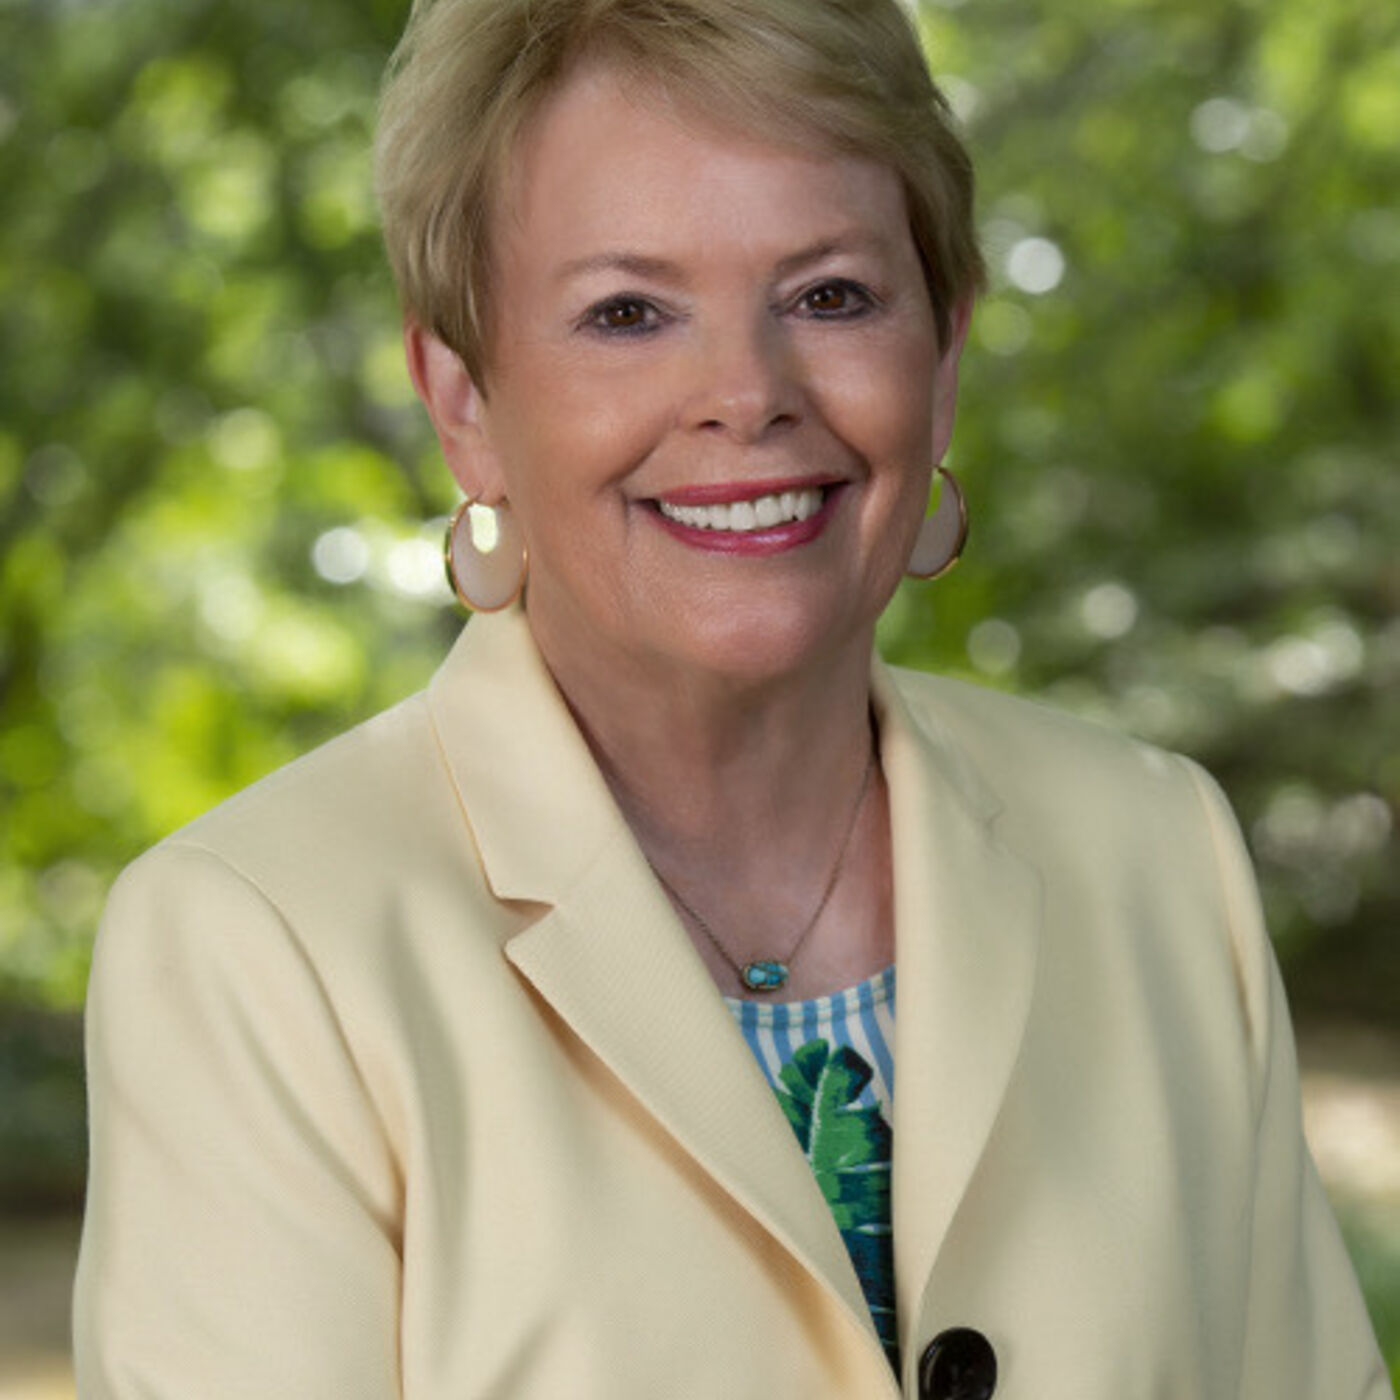 #56 Janie Day, President/CEO of Germantown Area Chamber of Commerce